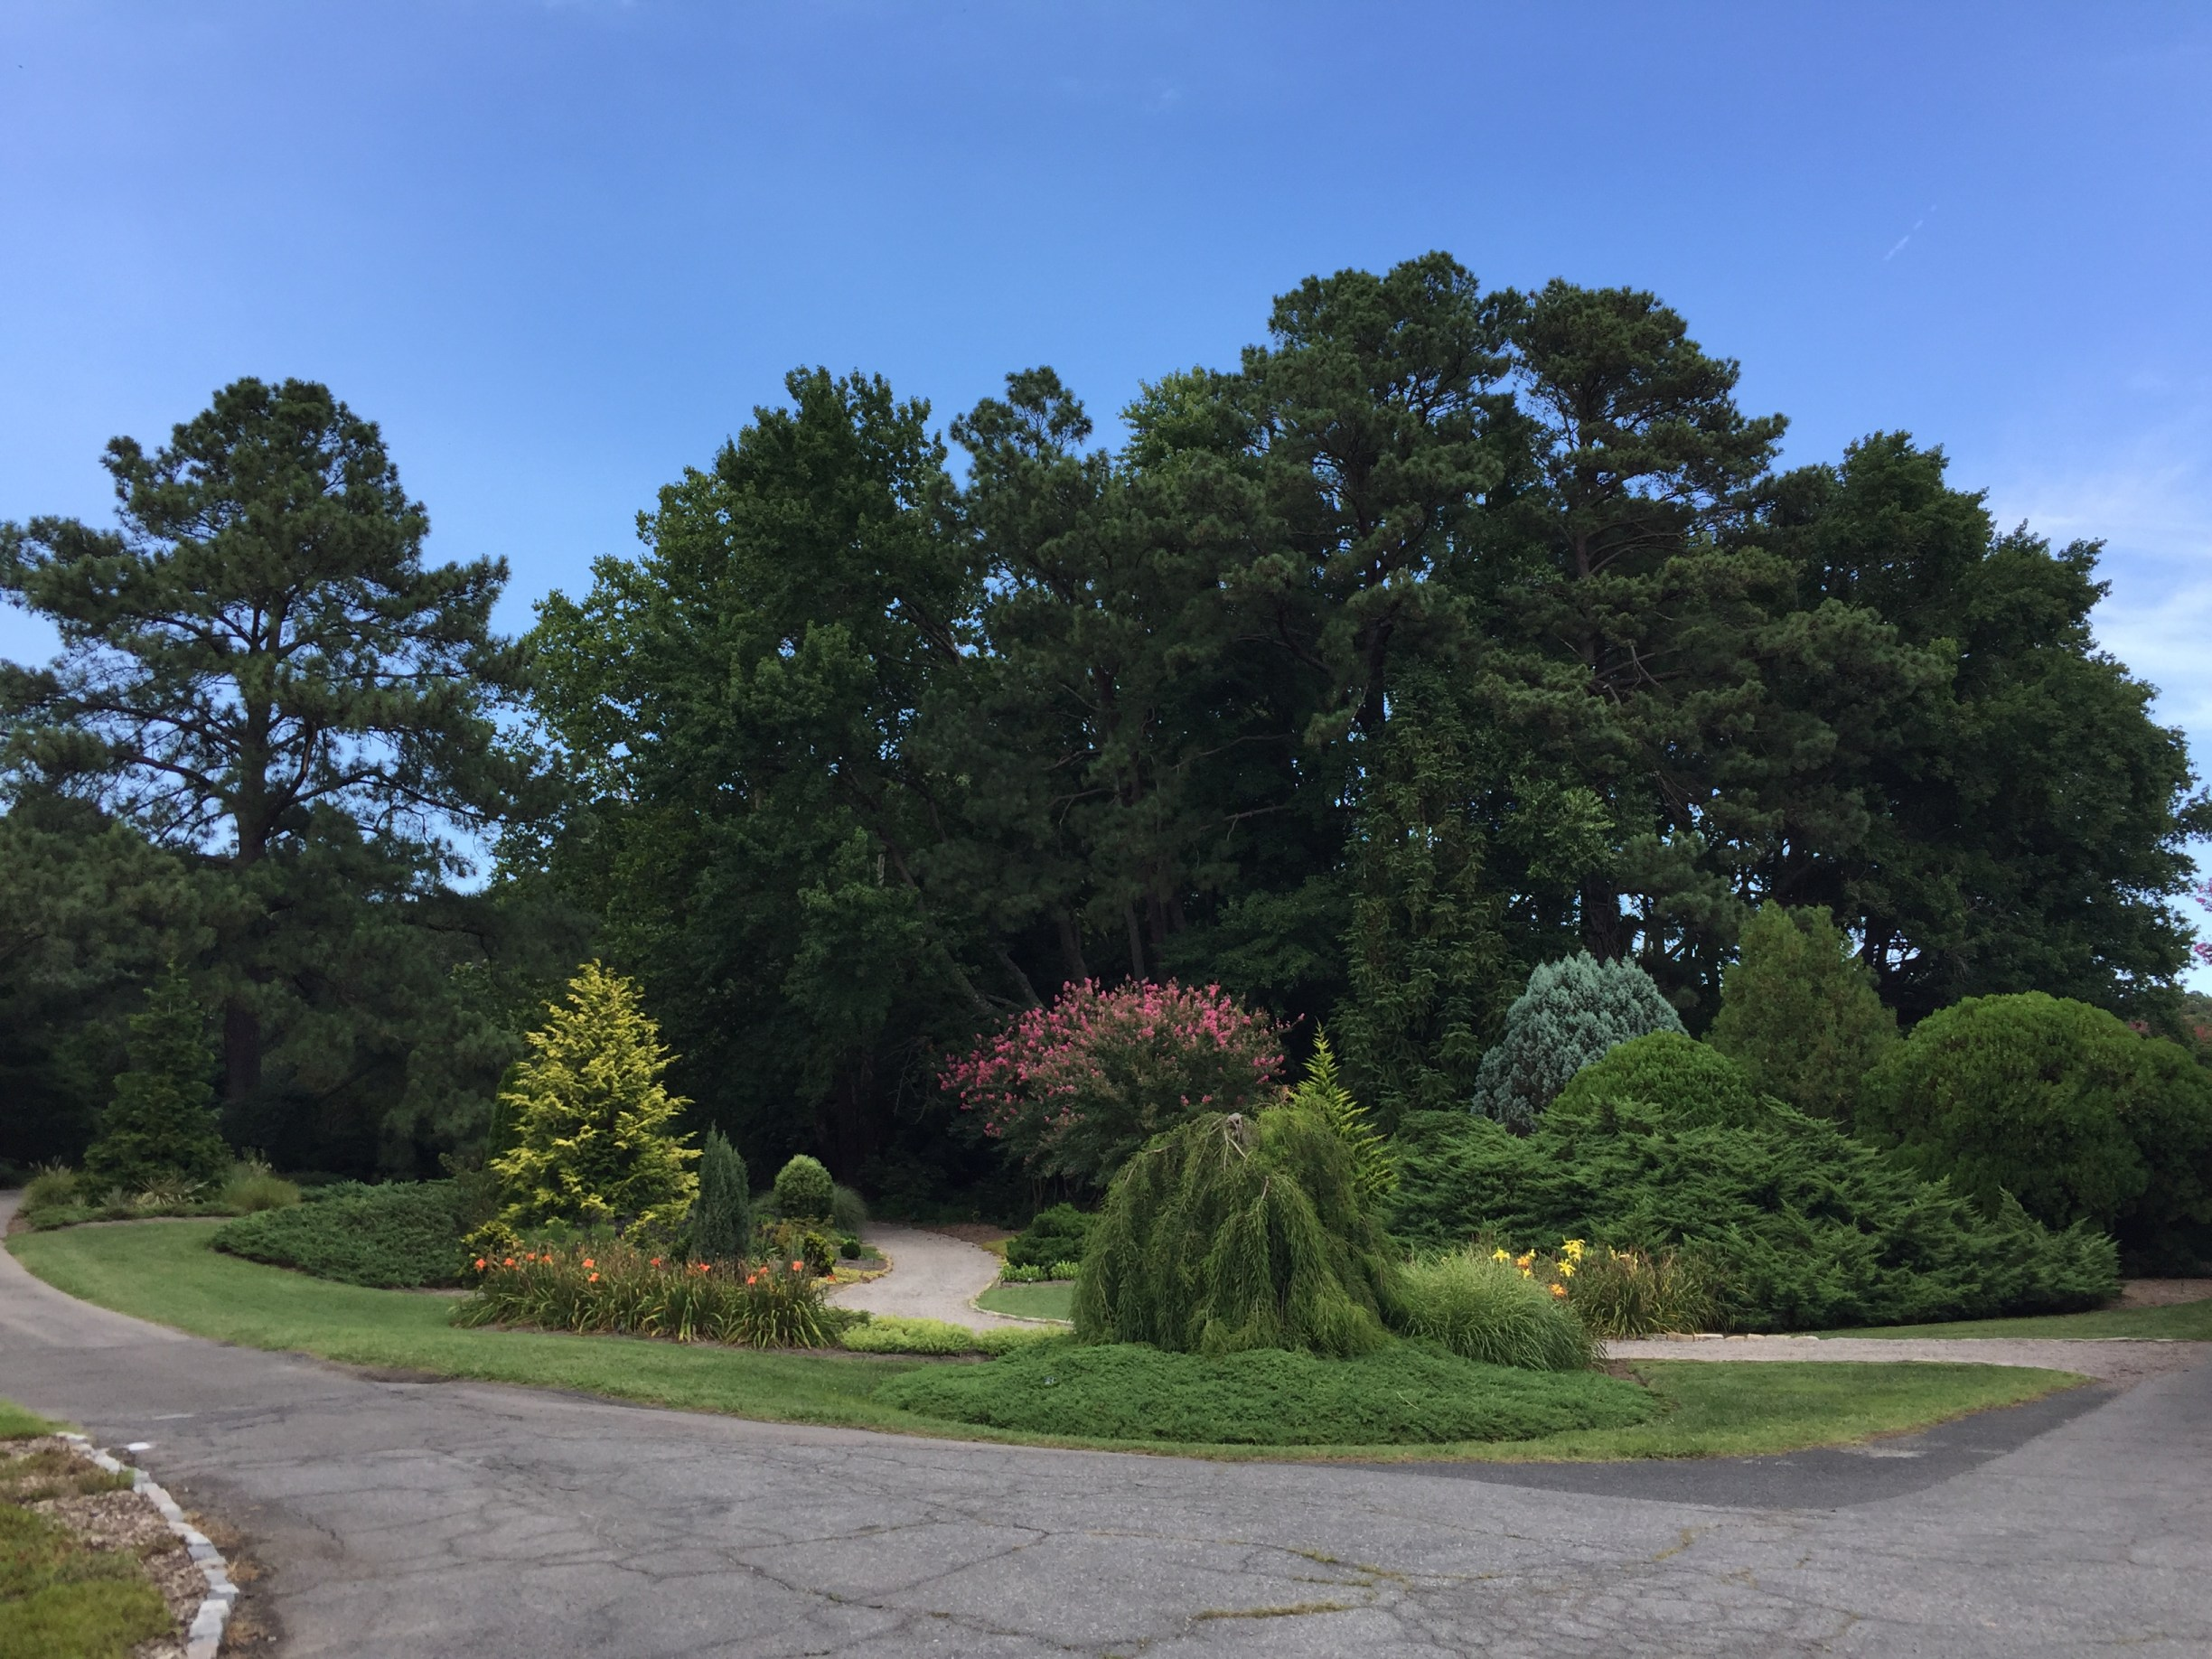 A variety of shrubs and trees in the Conifer Garden. Photo © 2018 Elaine Mills